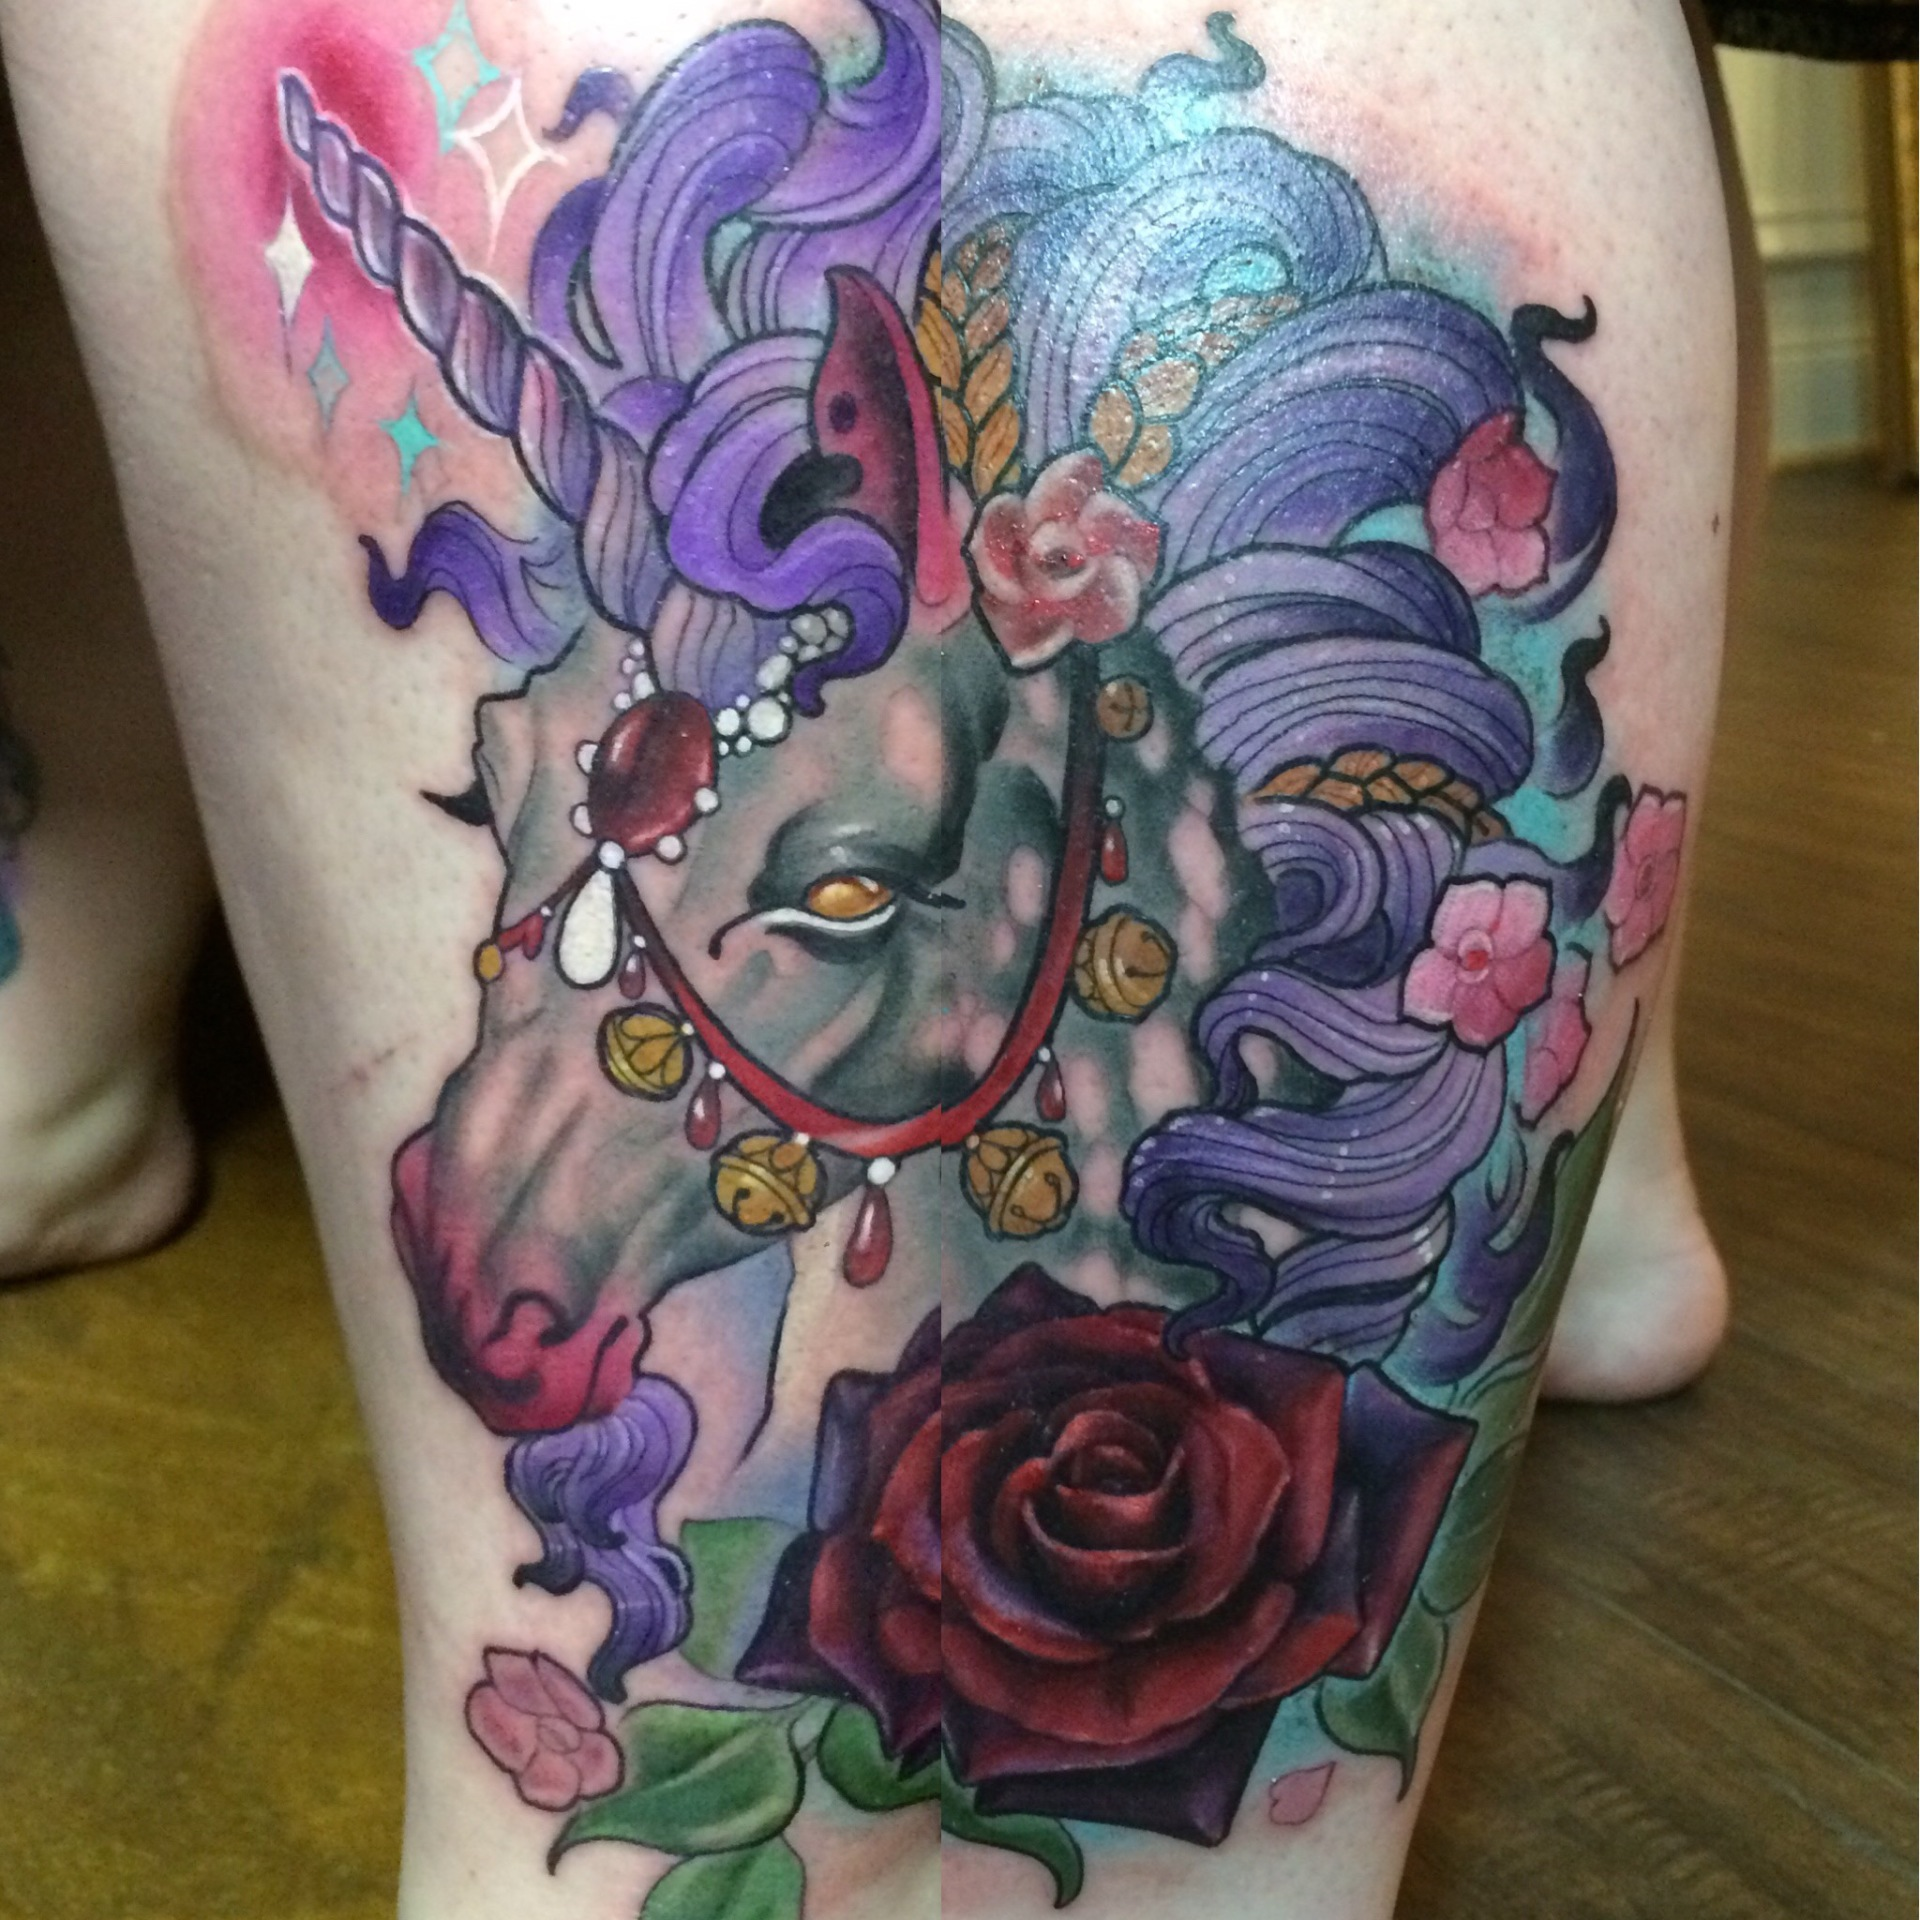 unicorn tattoo, unicorn, art, neotraditional, art nouveau, fantasy art